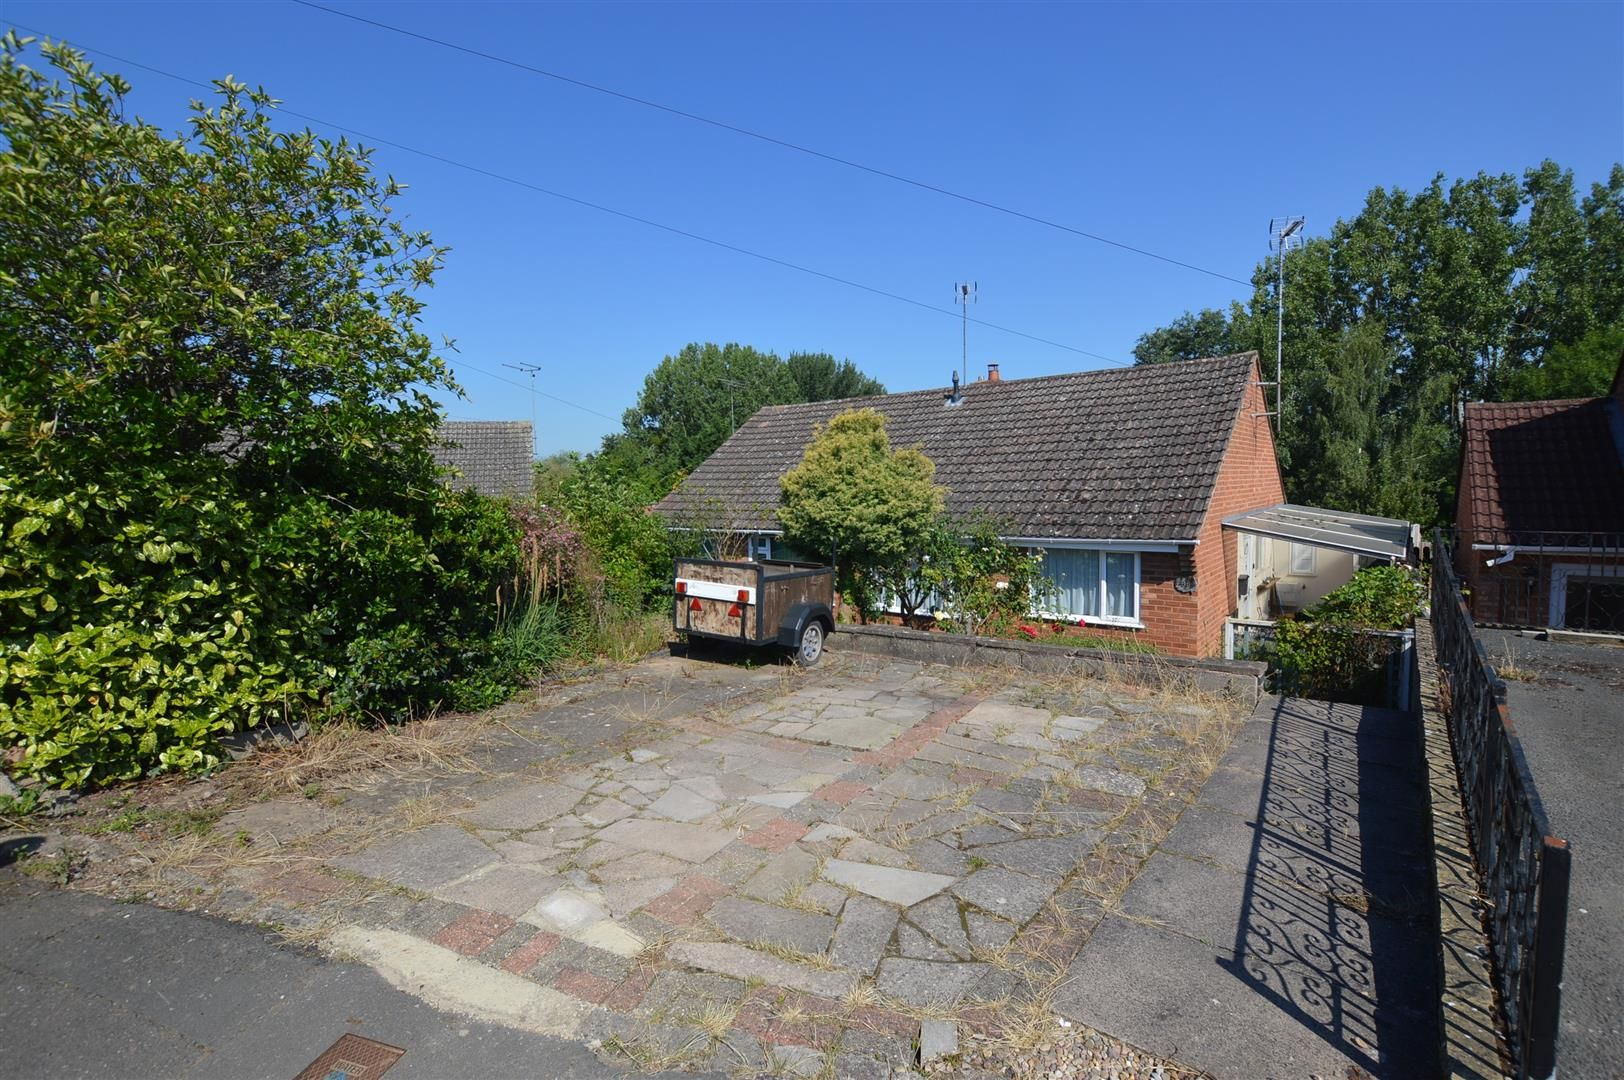 2 bed semi-detached-bungalow for sale in Leominster 13